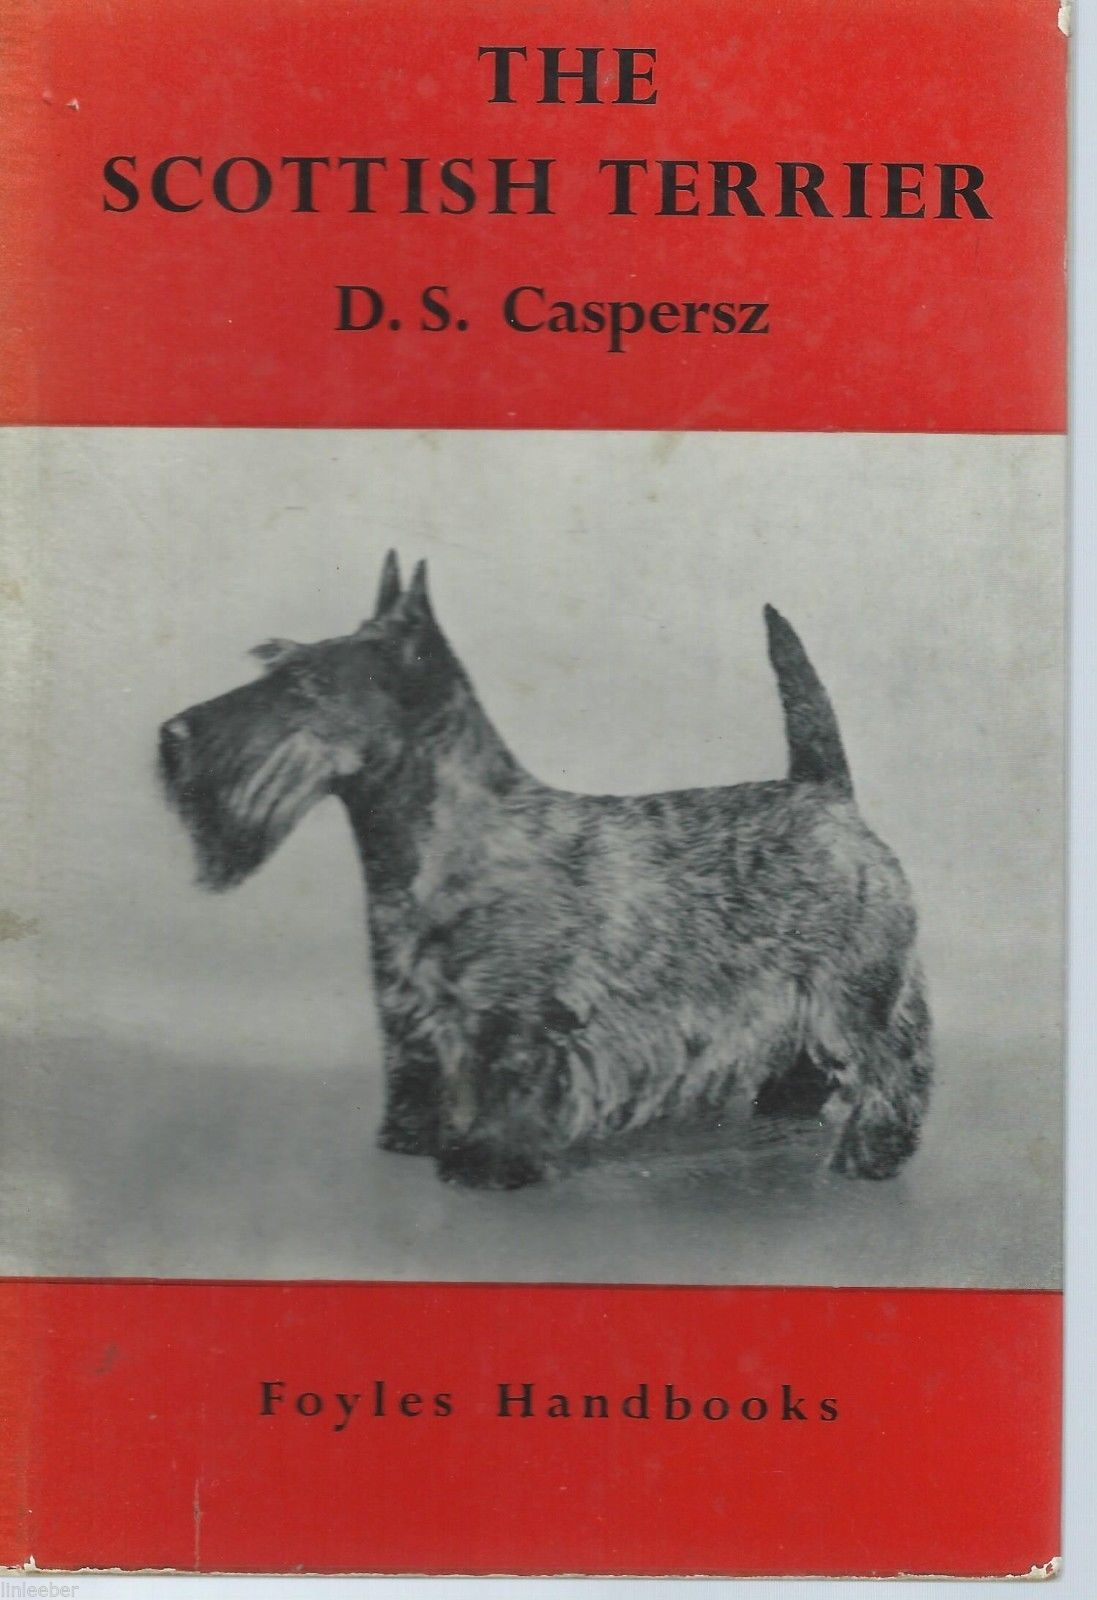 The Scottish Terrier By D.S.Caspersz (Foyles Handbooks);1958;B&W Photographs;HTF